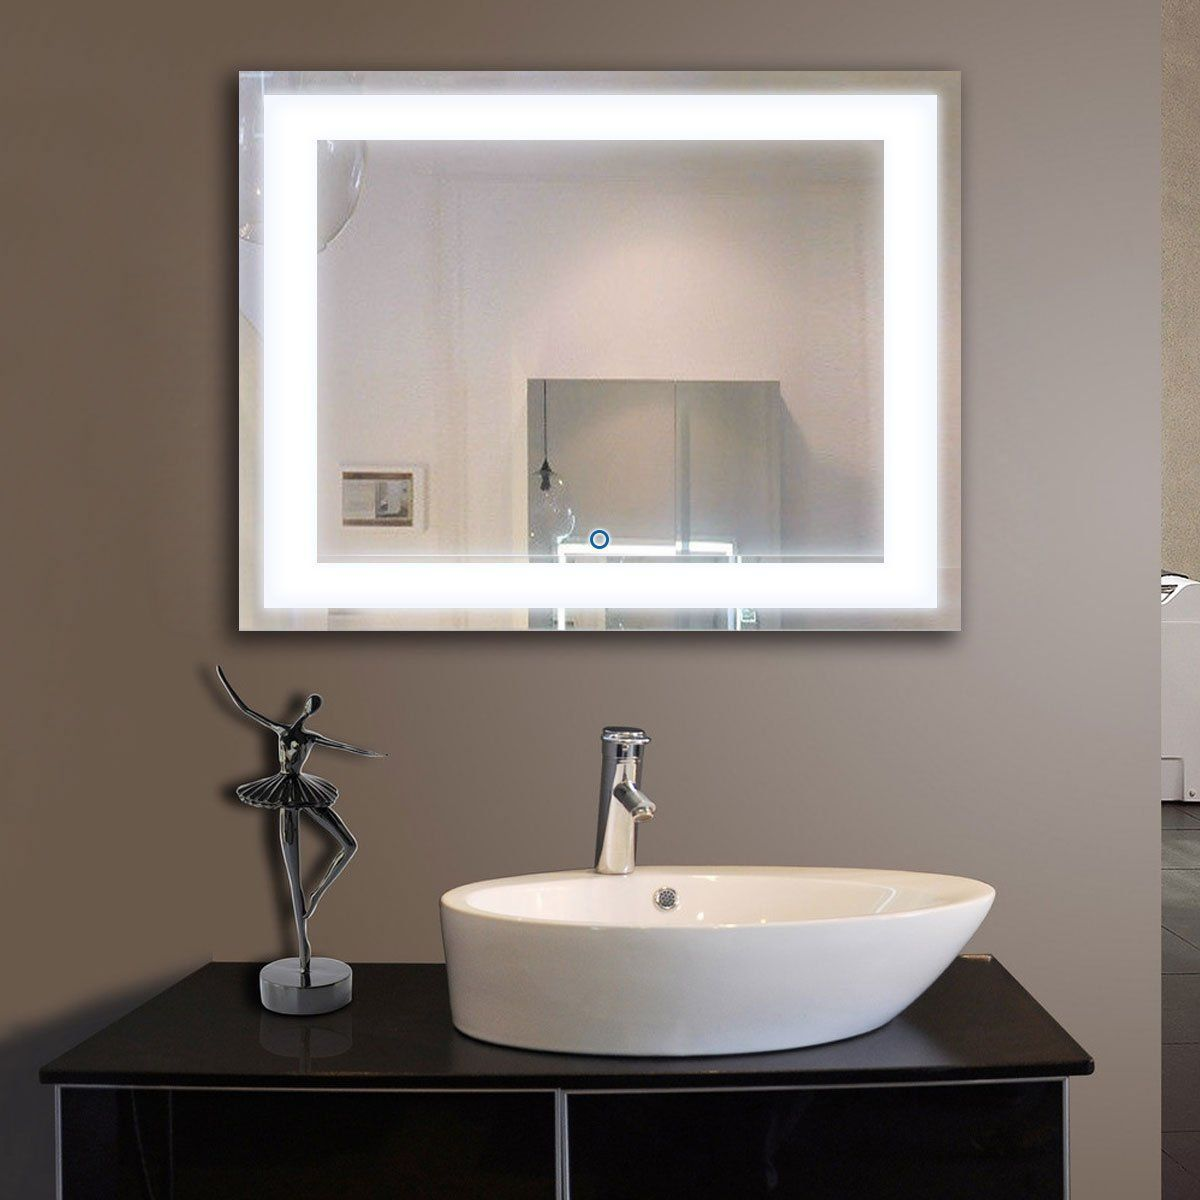 Decoraport inch inch horizontal led wall mounted lighted